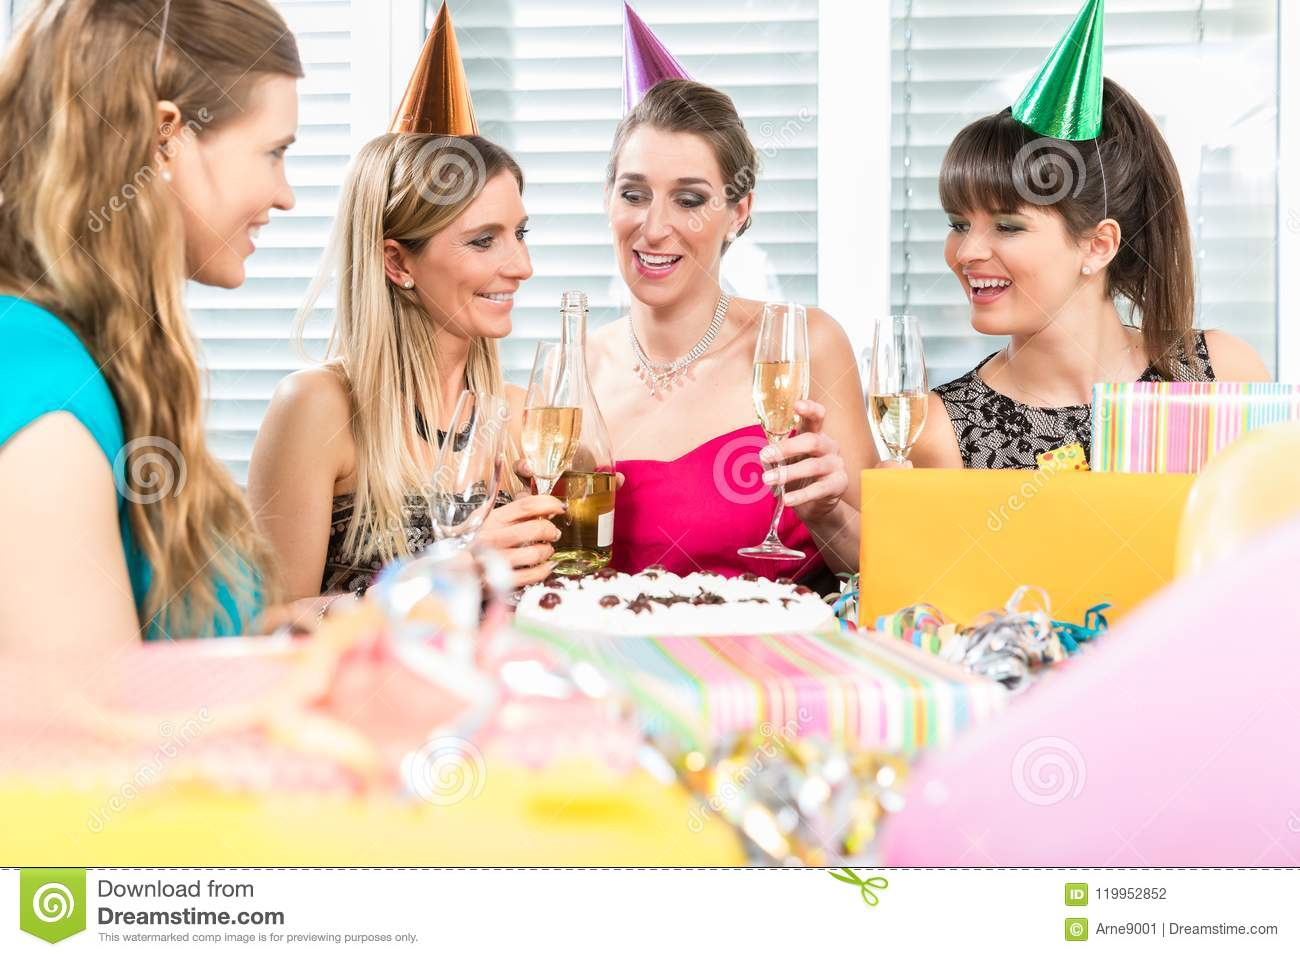 Group Of Female Best Friends Drinking Champagne In Front The Birthday Cake While Celebrating Together With Joy And Positive Thinking At Home